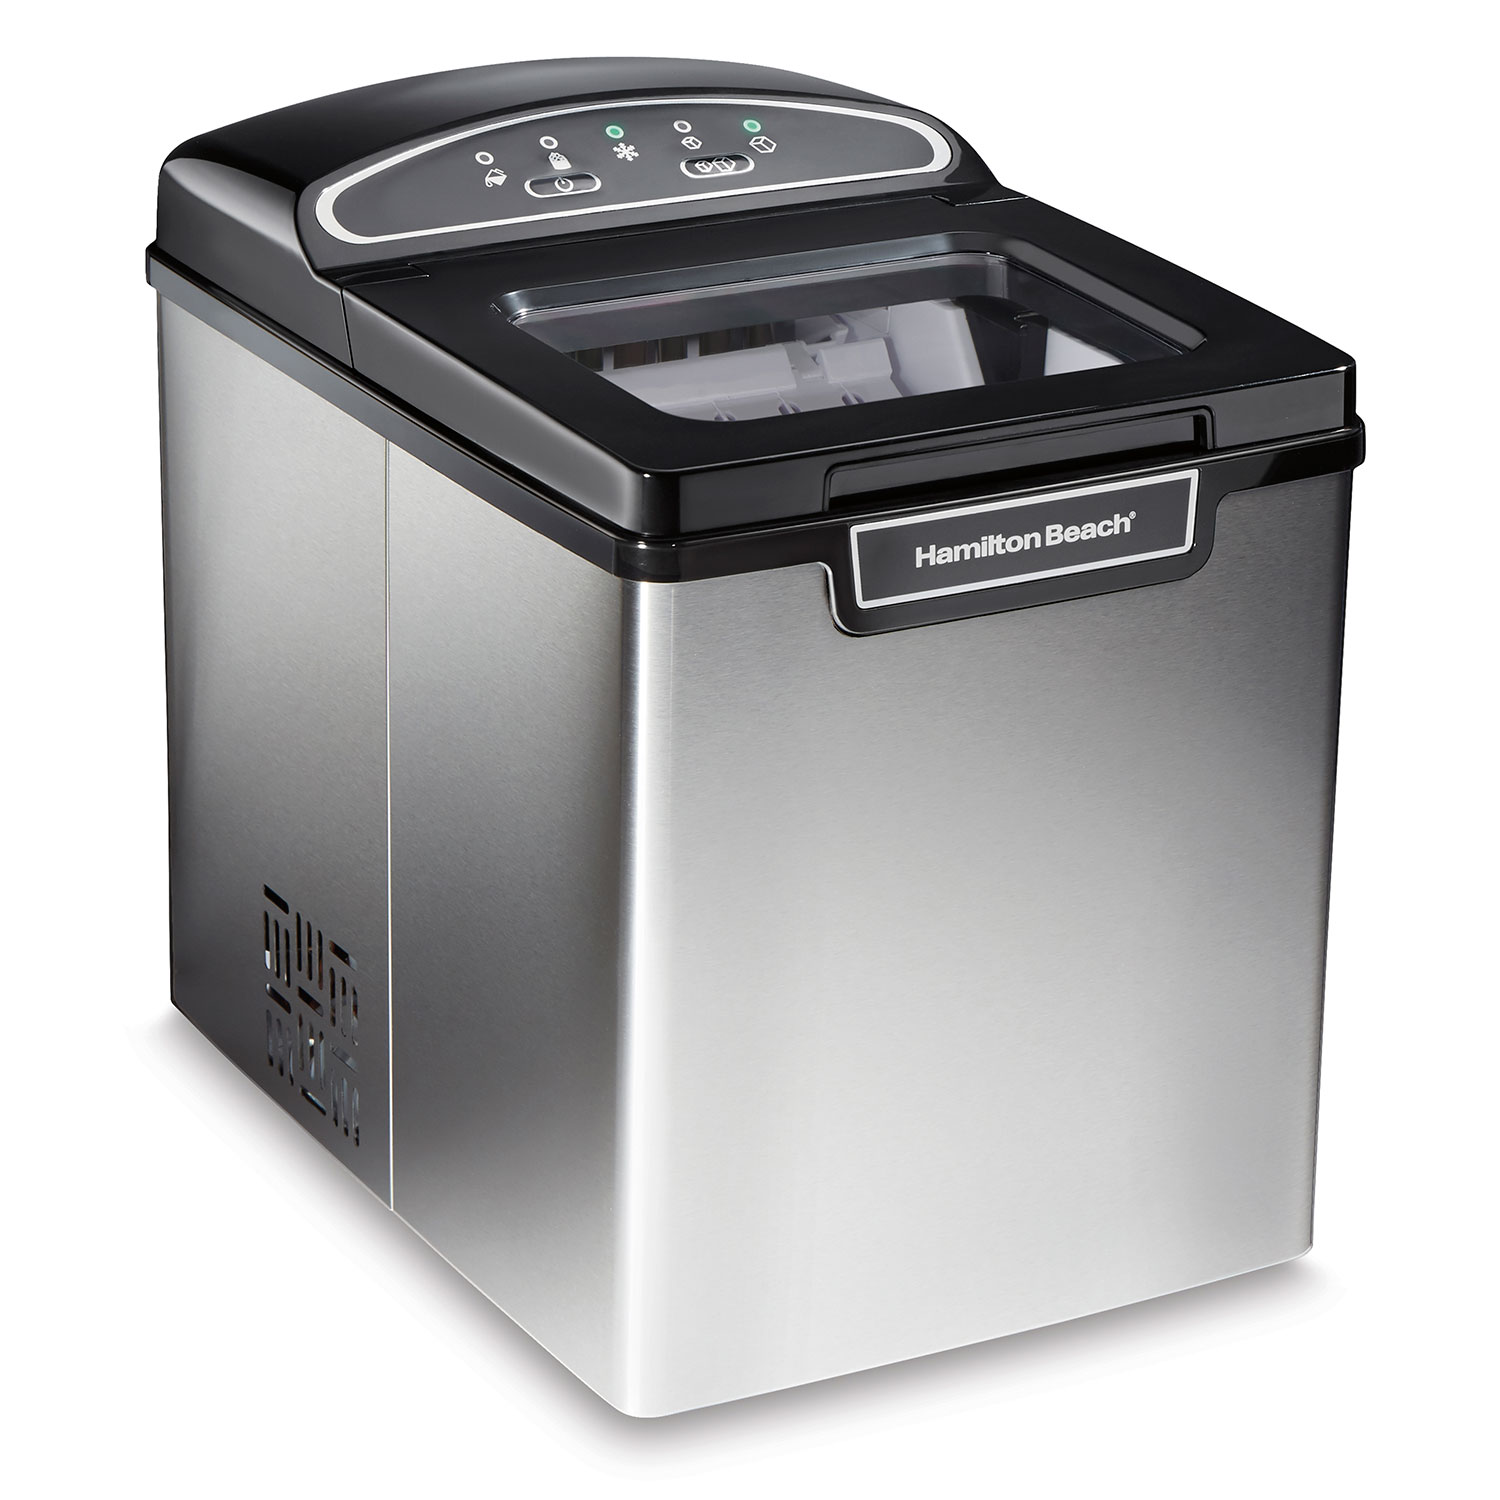 Countertop Ice Maker (86150)